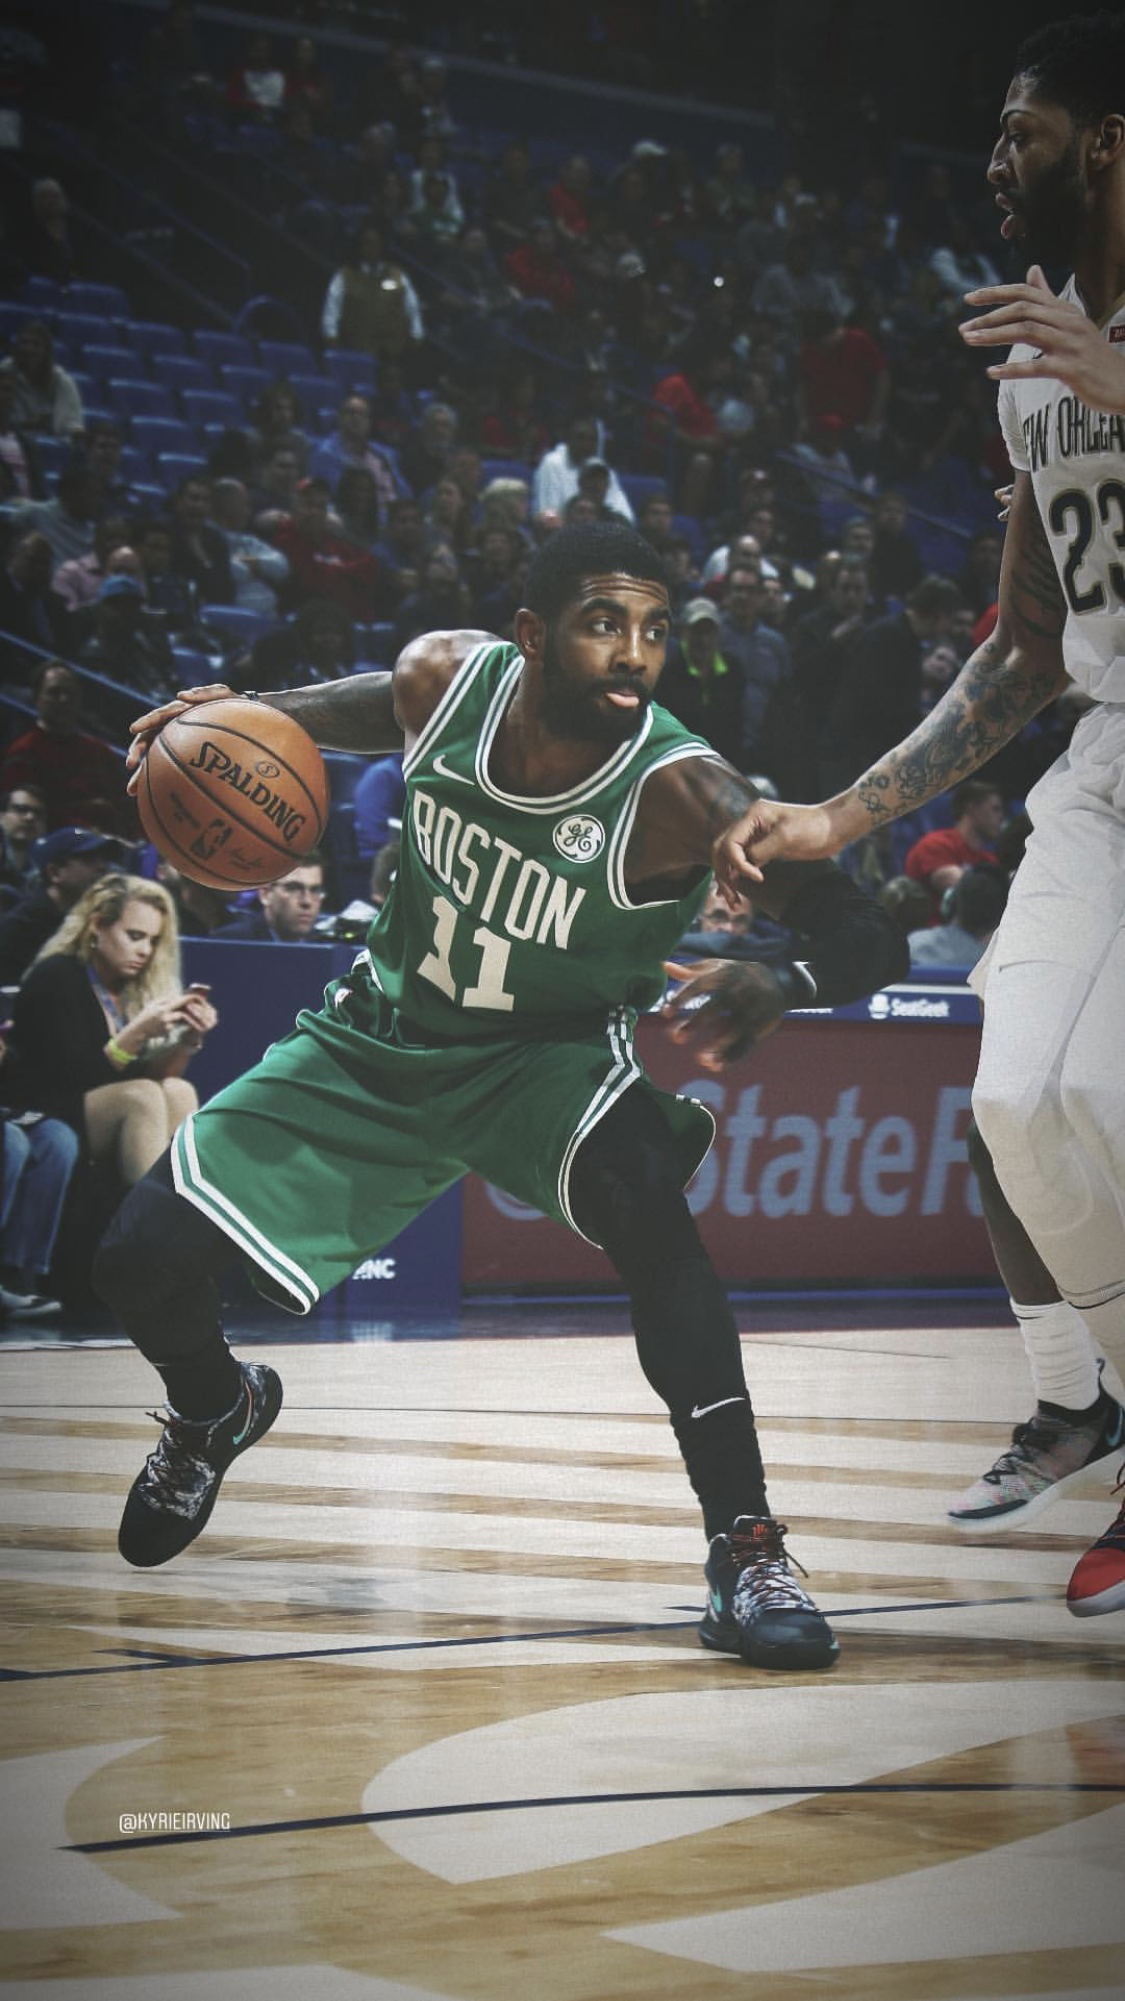 Pin By Malena On Kyrie Irving Kyrie Irving Celtics Basketball Players Nba Basketball Pictures